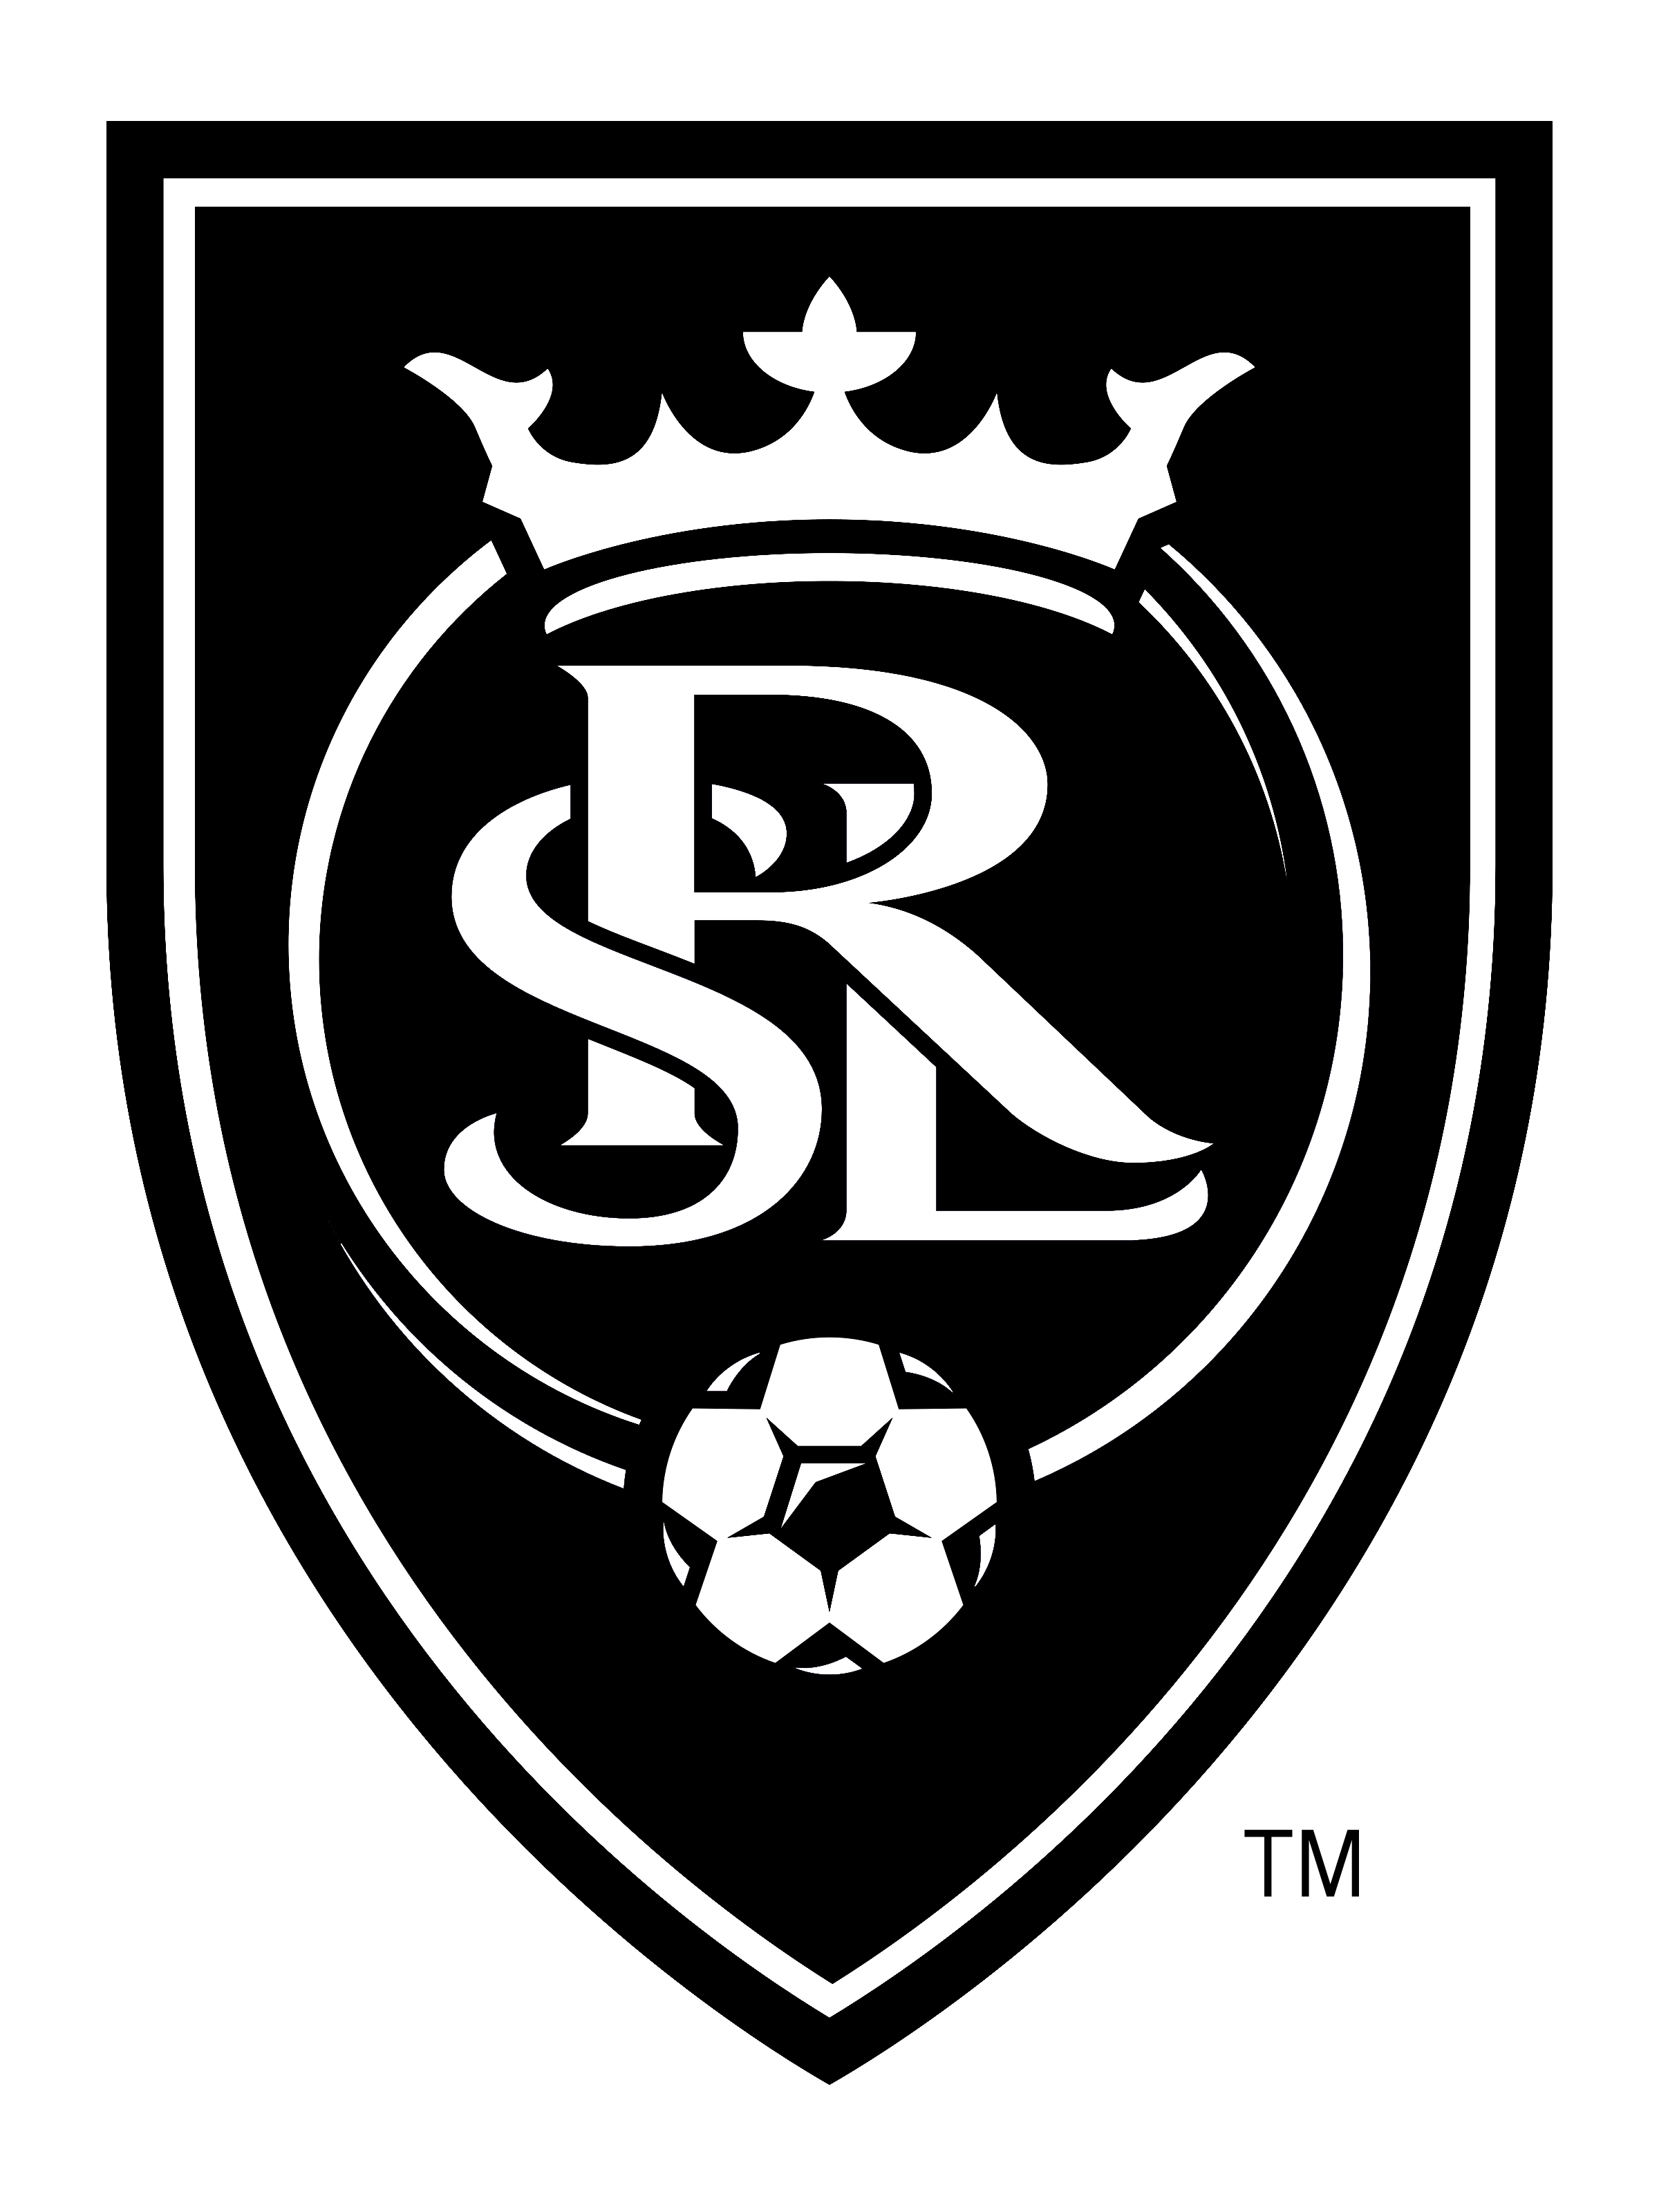 Real Salt Lake logo black and white black and white - Real Salt Lake Logo Vector PNG